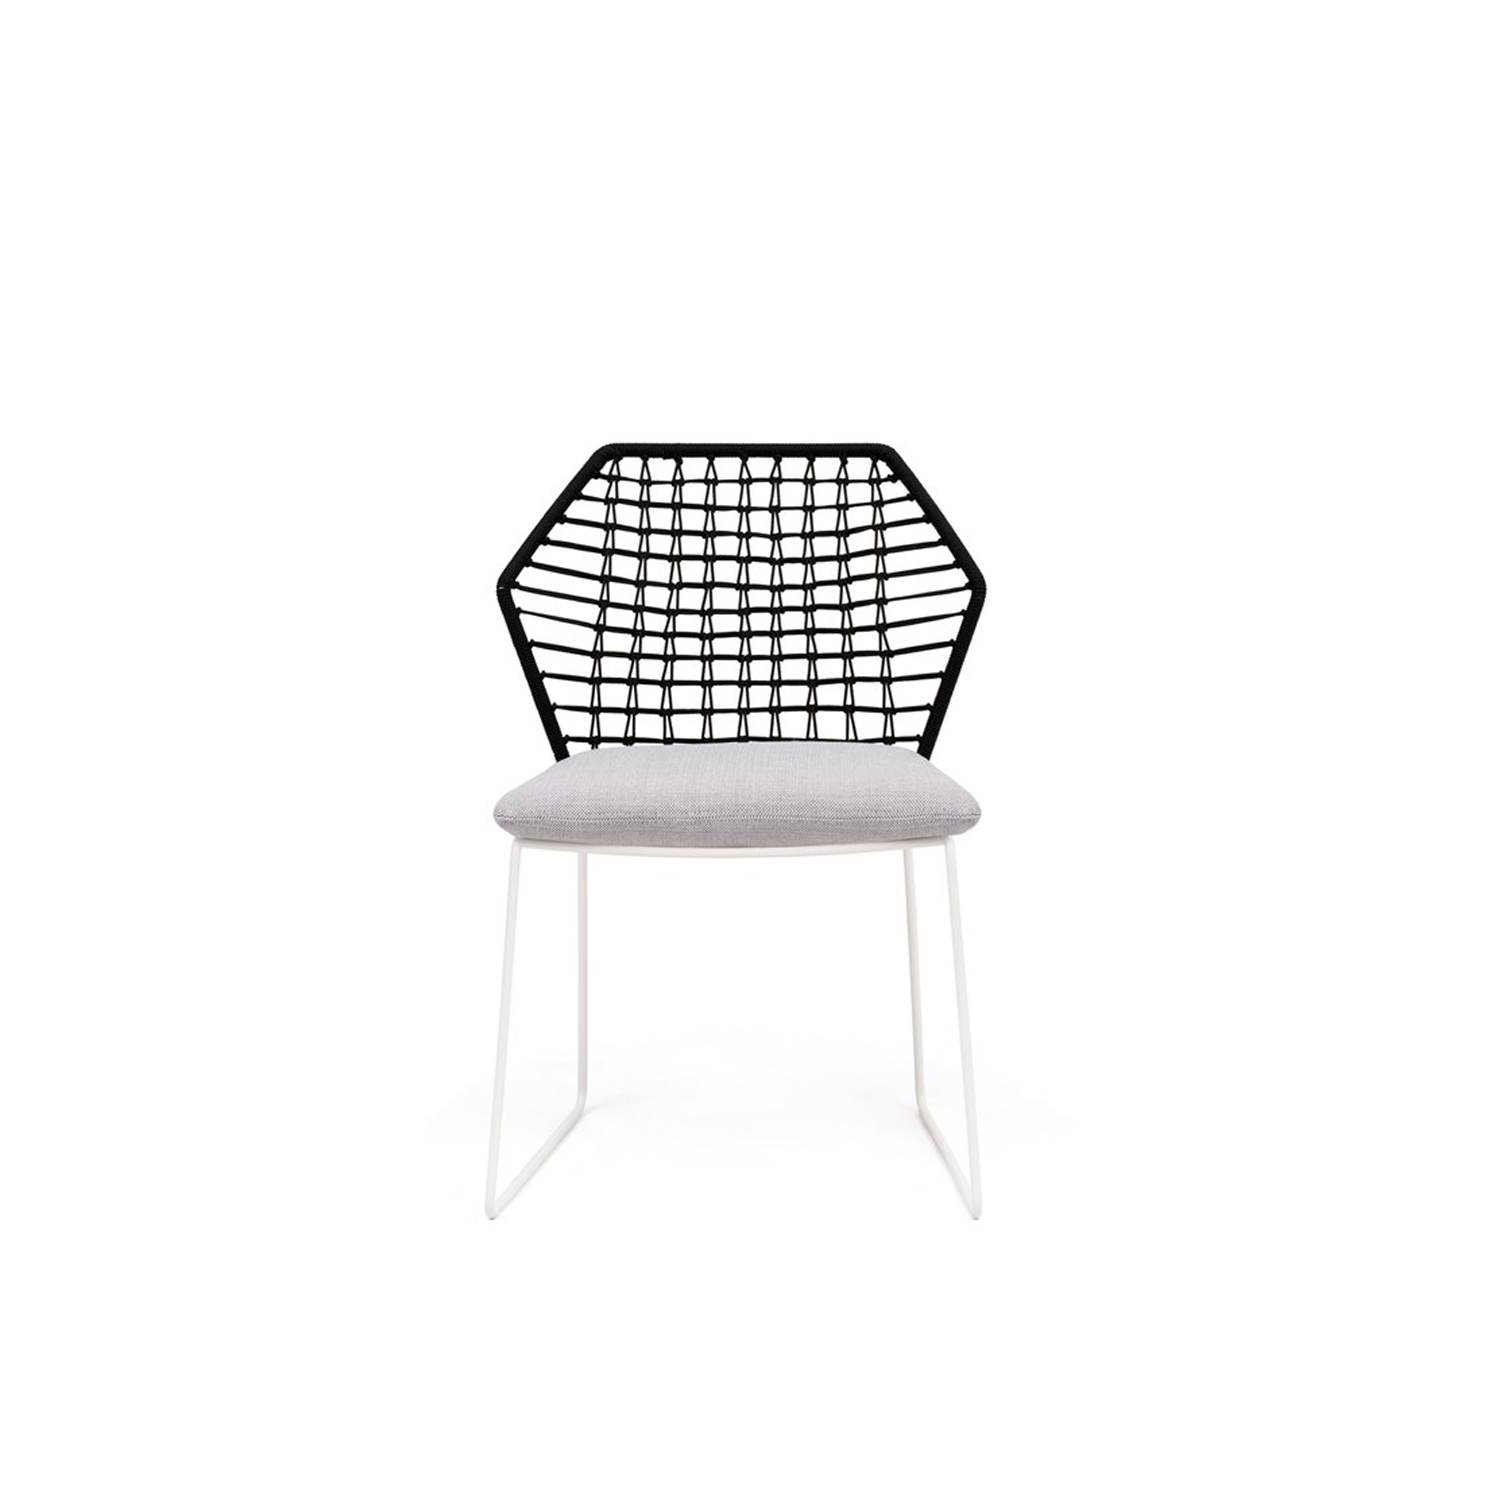 New York Soleil Garden Chair - New York Soleil is a garden chair with removable fabric cover, part of the homonymous collection.‎